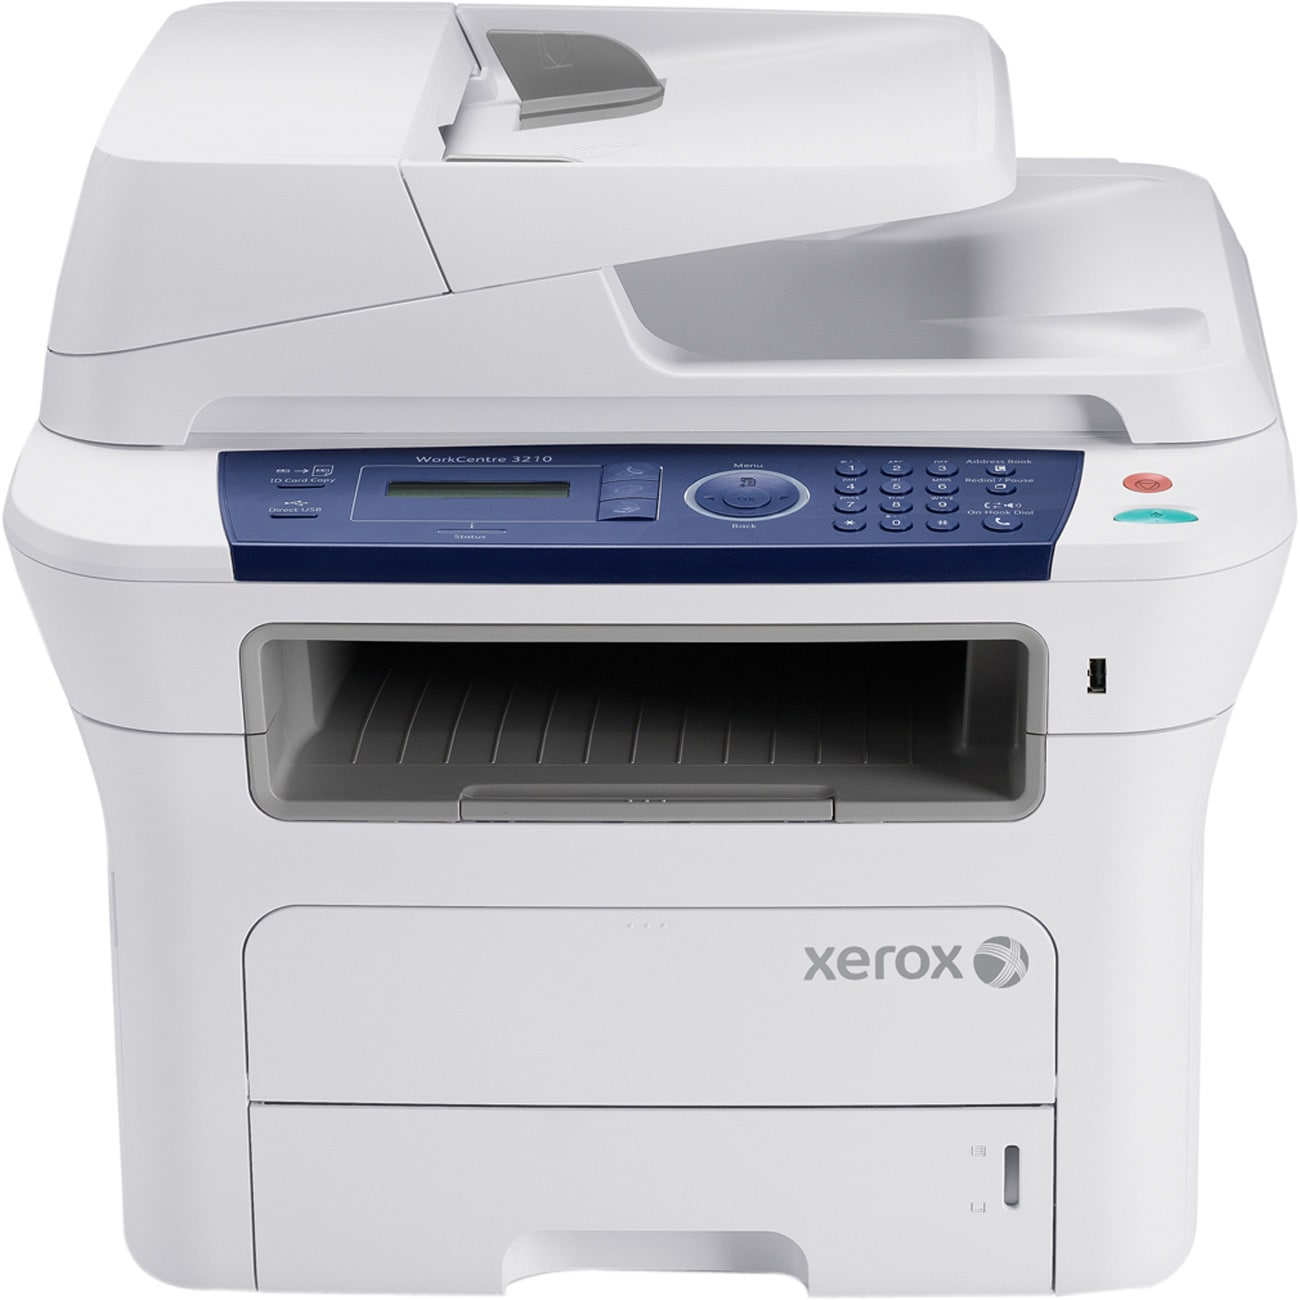 Xerox WorkCentre 3210N Multifunction Printer - Thumbnail 0